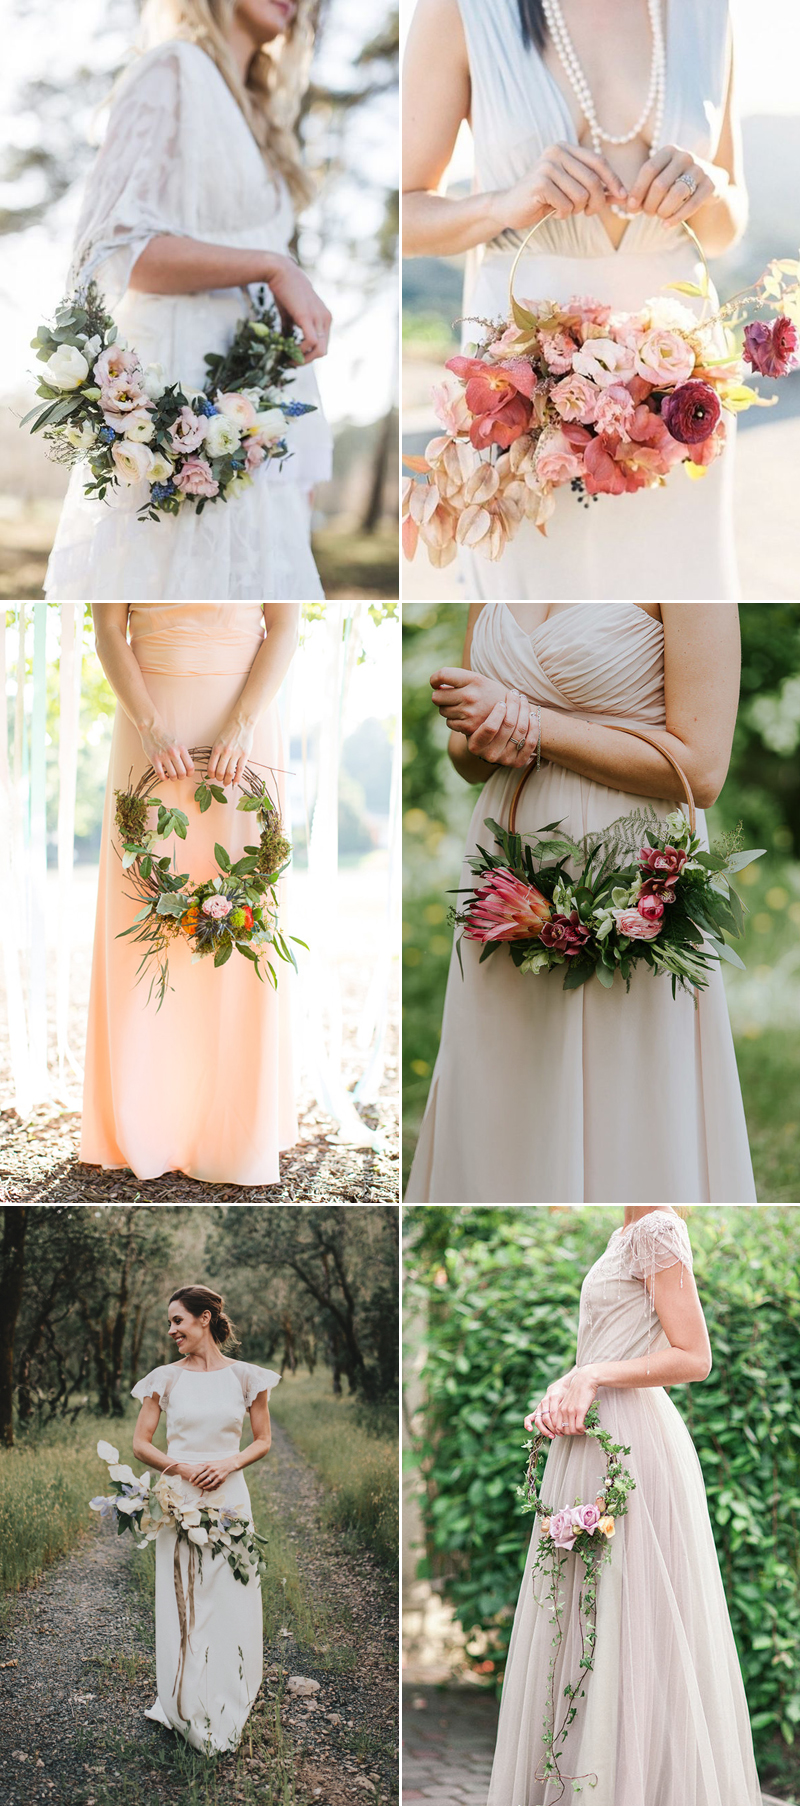 Hoop Bouquets A Modern Alternative And Wedding Trend You Dont Want